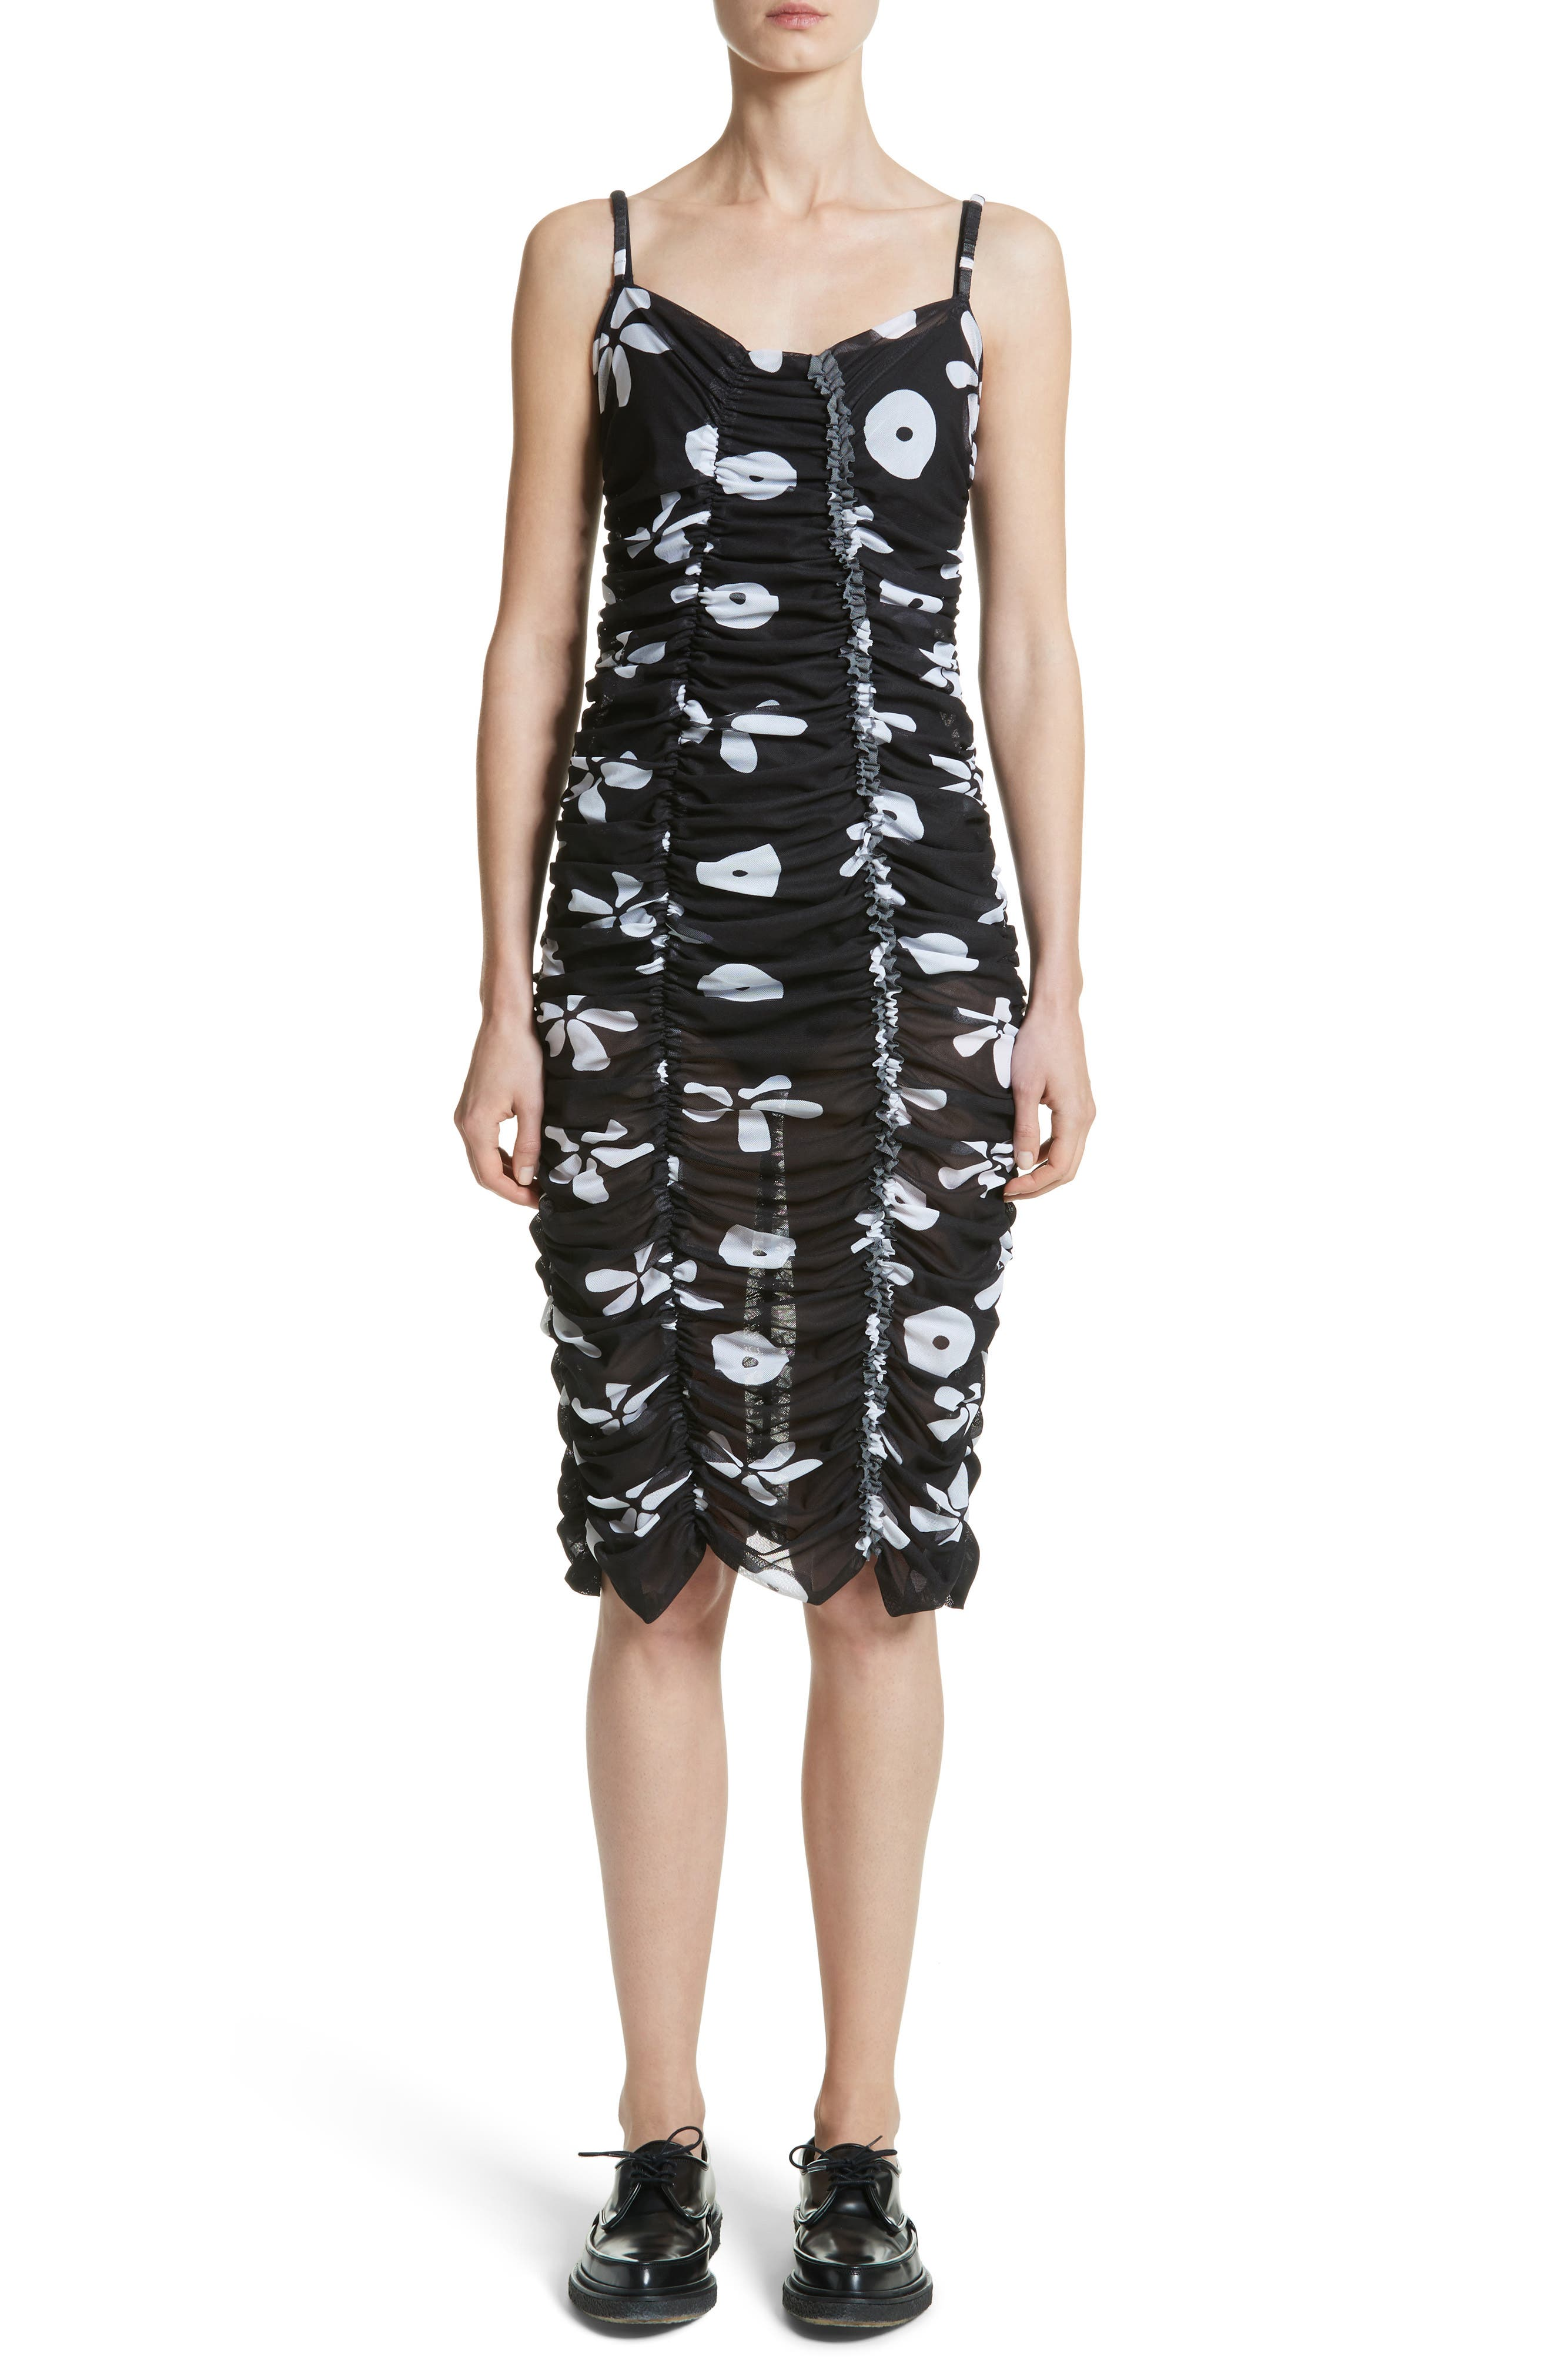 Main Image - Molly Goddard Scarlett Floral Print Mesh Dress